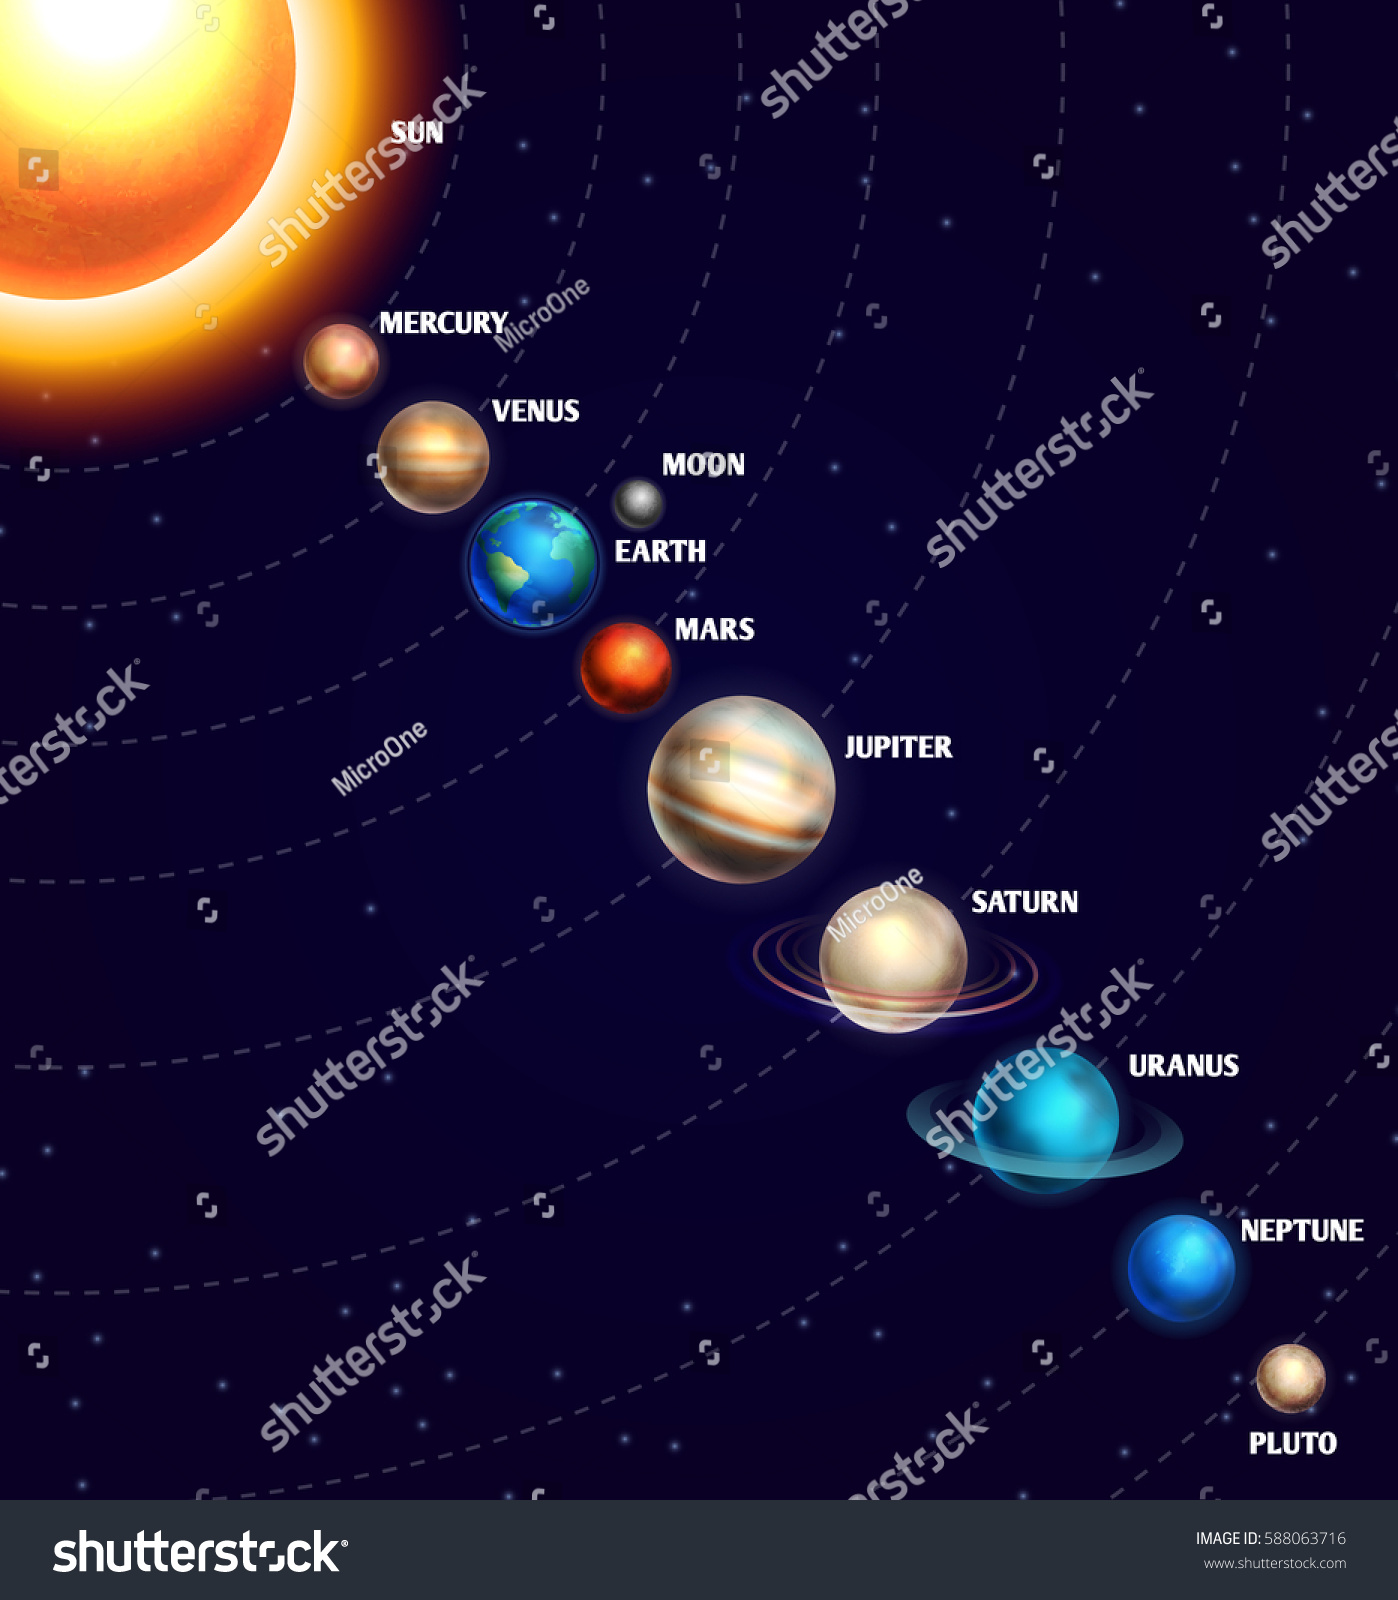 starry sky with planets - photo #33